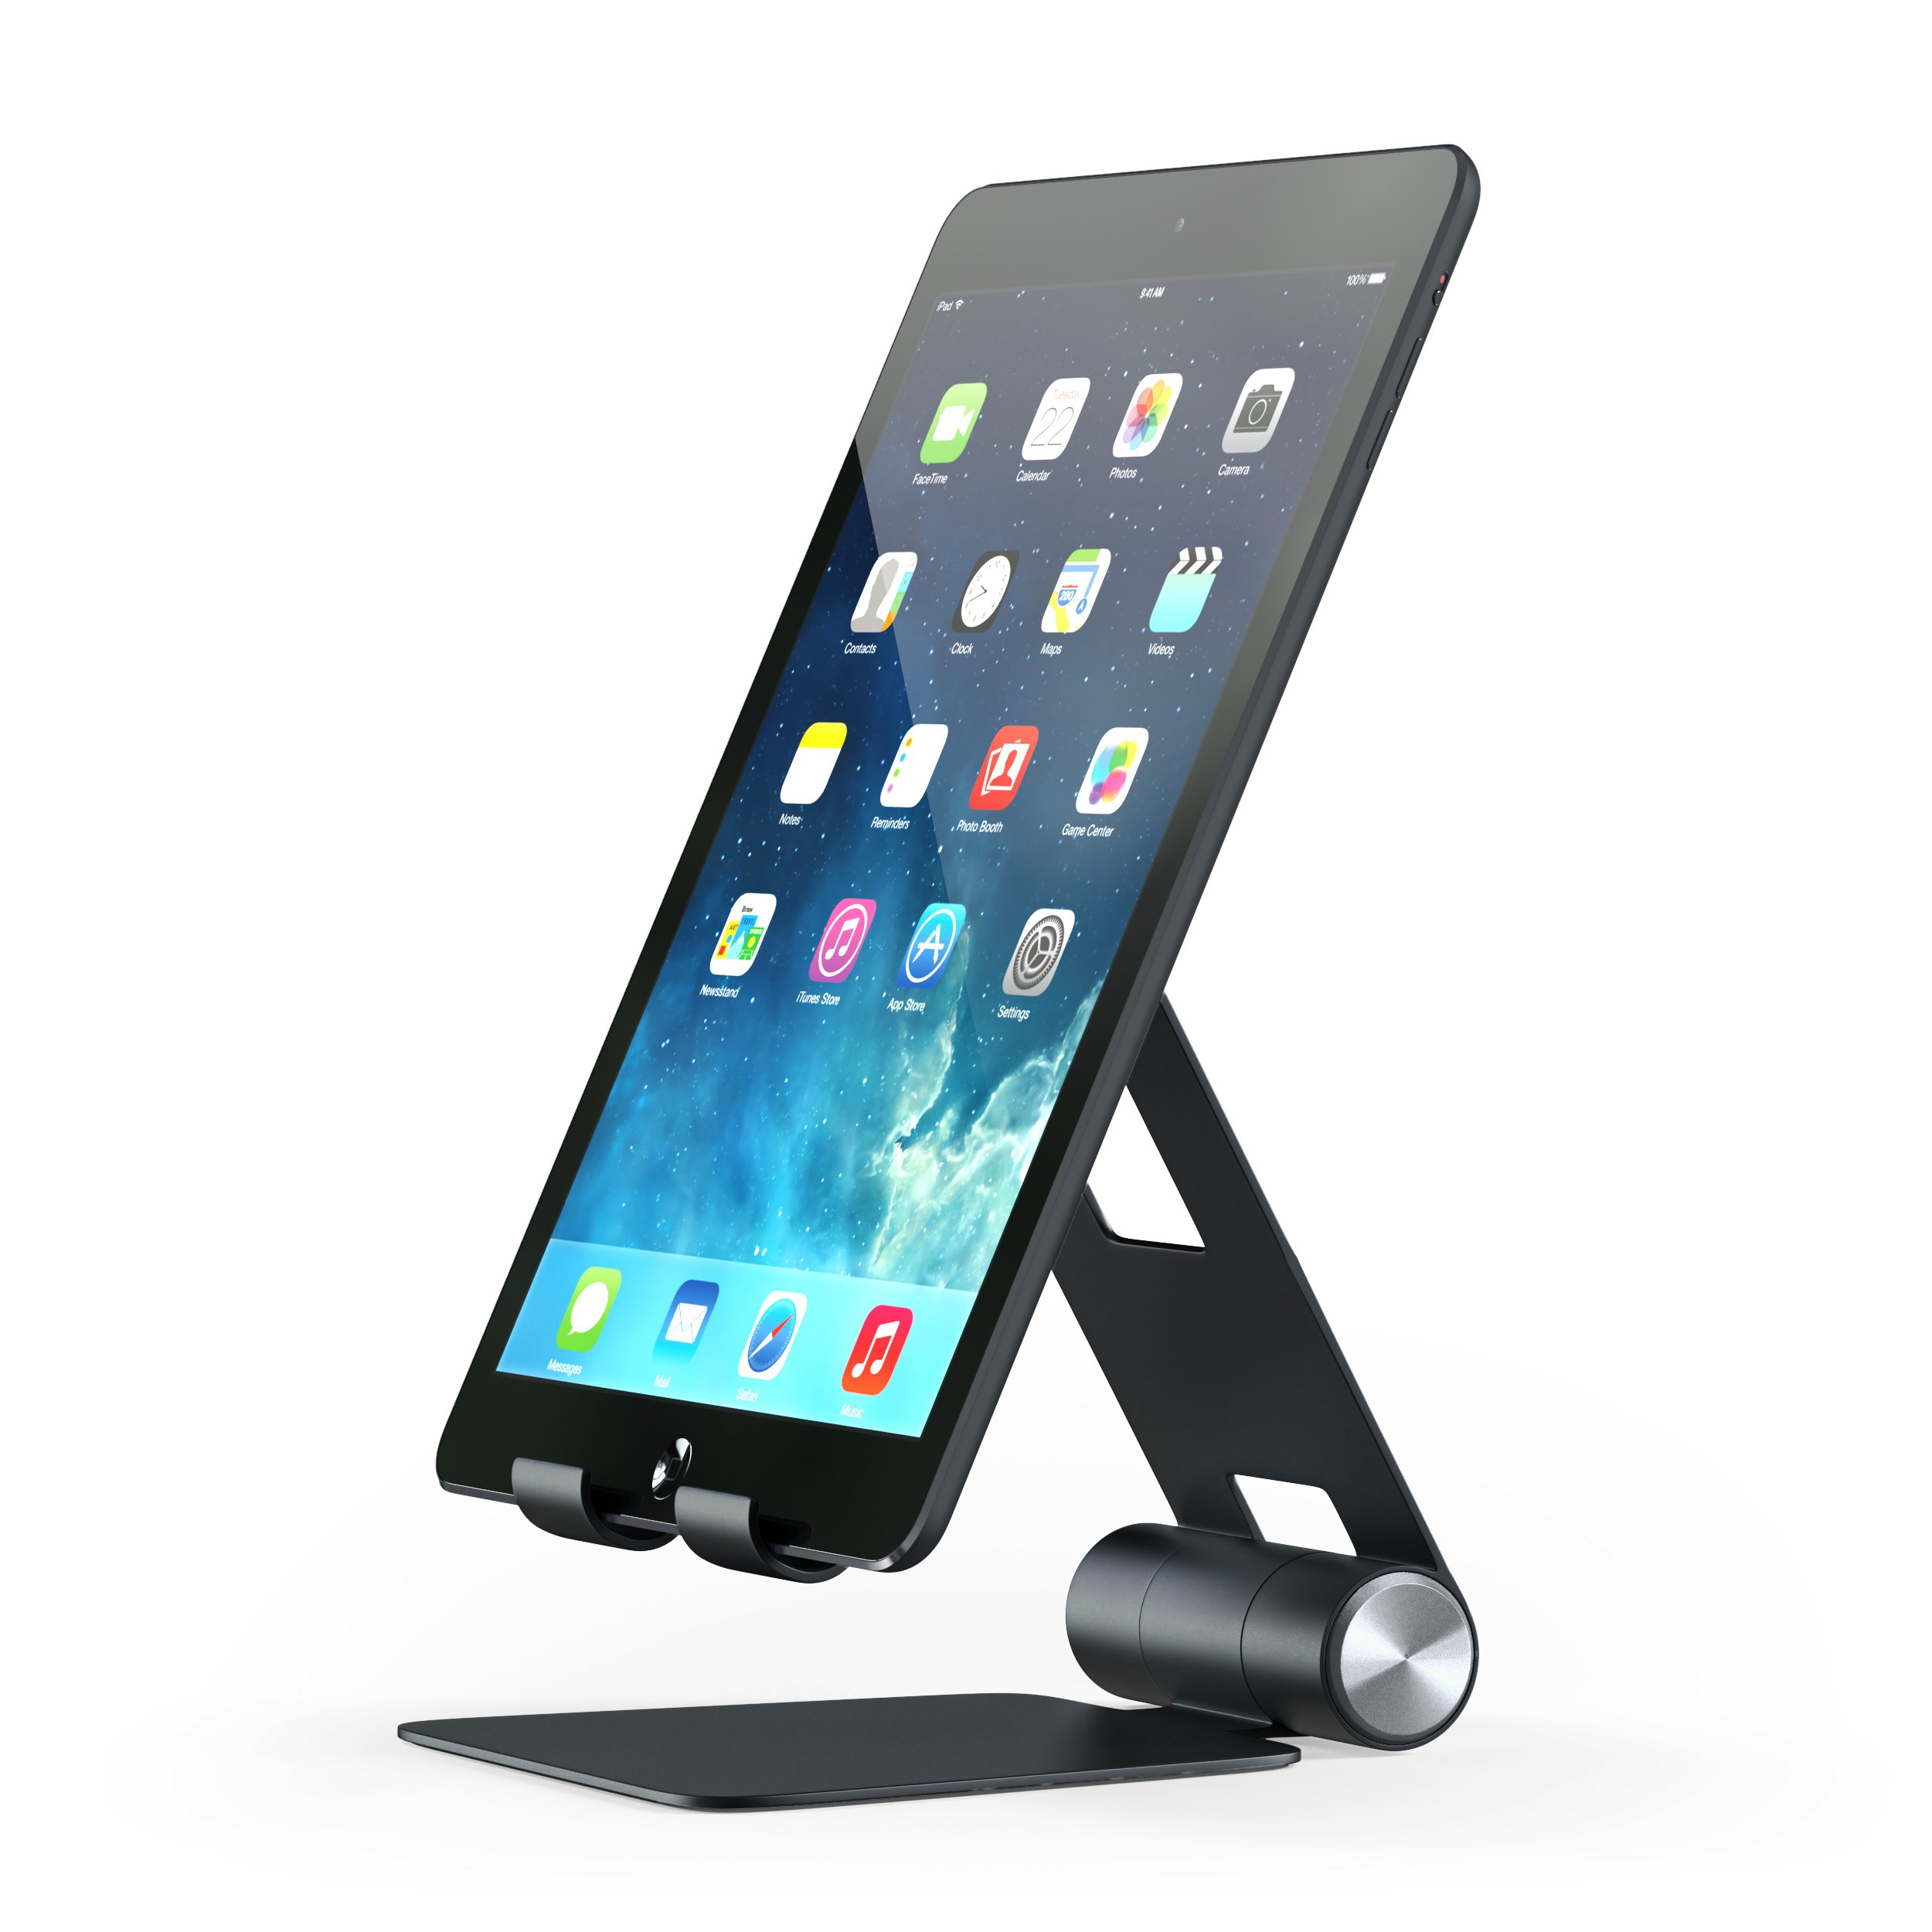 Satechi R1 Aluminum Multi-Angle Foldable Tablet Stand for iPad, iPad Pro, iPhone X, 8 Plus, 8, Samsung S8, MacBook 2015/2016, Microsoft Surface, Nintendo Switch and mo (Black)